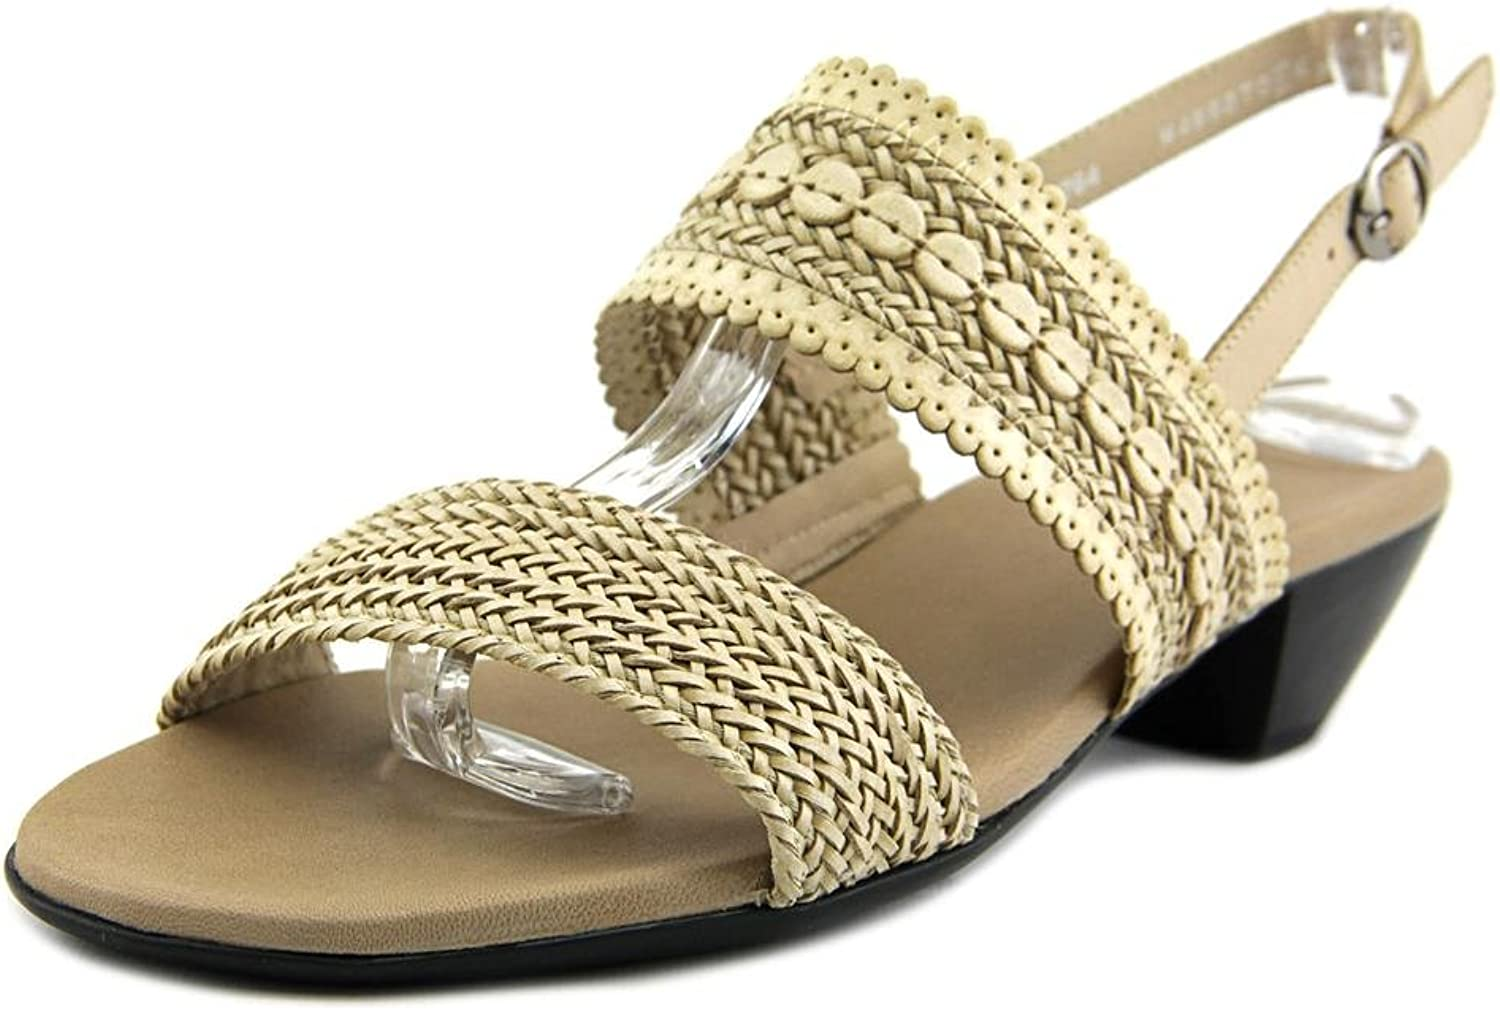 Munro Women's Mgoldcco Black Woven sandals 6 M